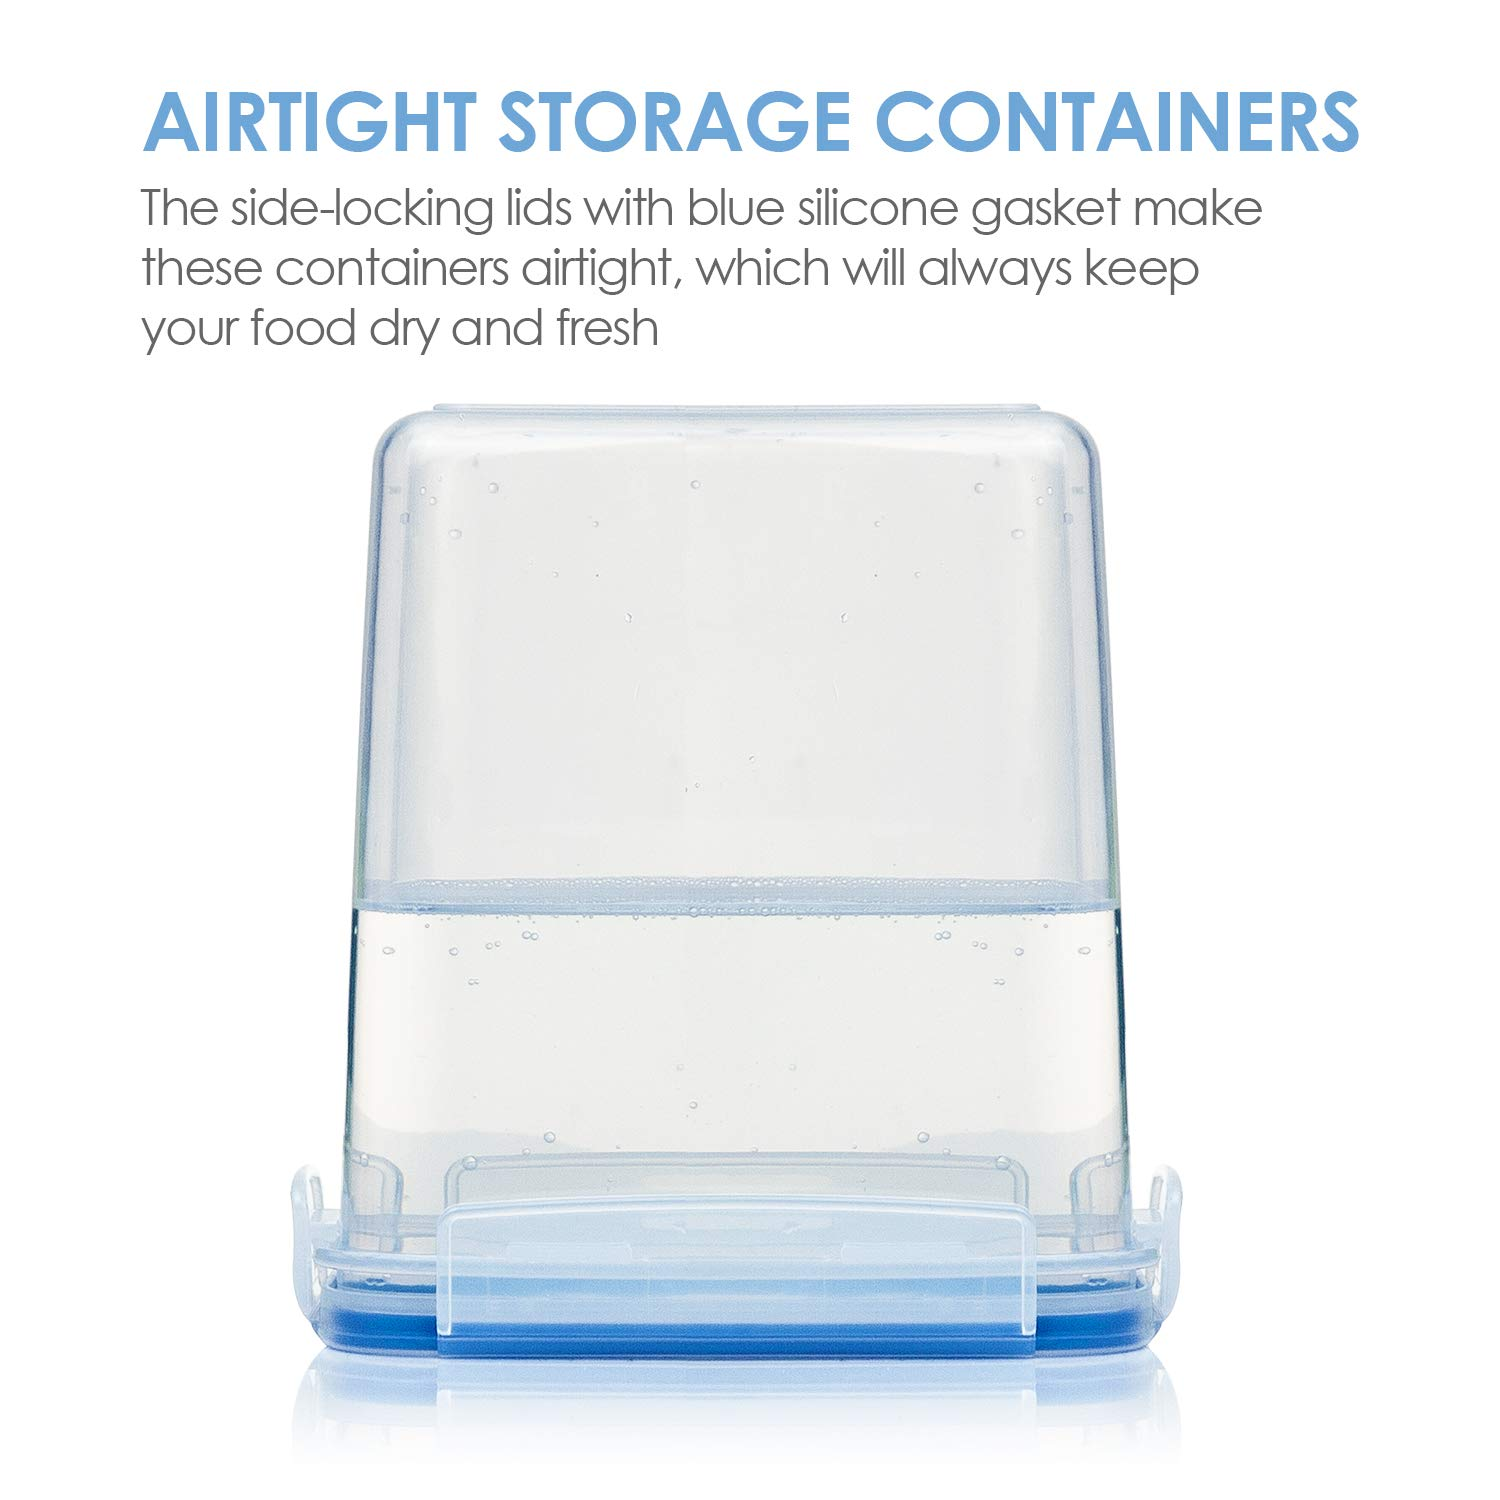 Vtopmart Airtight Food Storage Containers 12 Pieces - Plastic PBA Free Kitchen Pantry Storage Containers for Sugar,Flour and Baking Supplies - Dishwasher Safe - 24 Chalkboard Labels and 1 Marker by Vtopmart (Image #3)